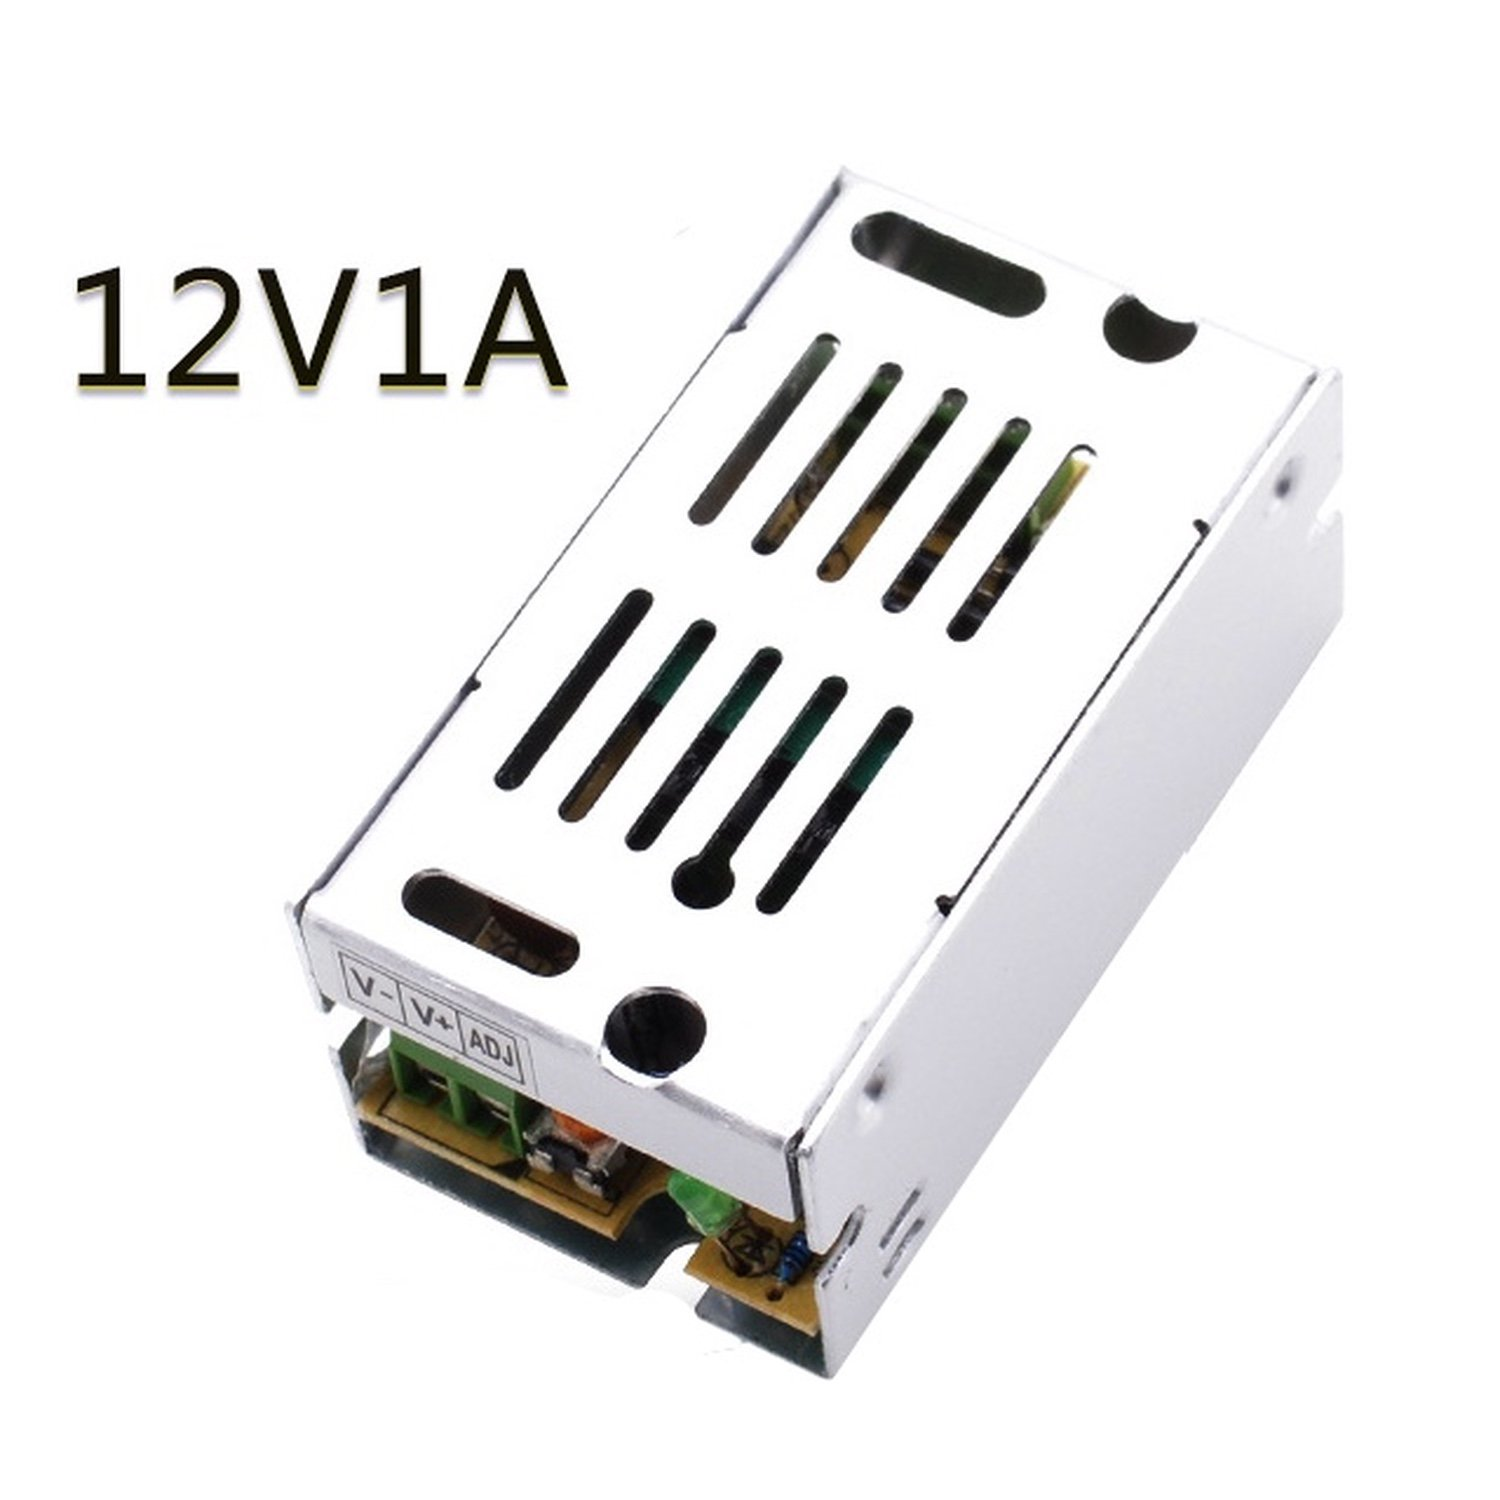 12v 1A Dc Universal Regulated Switching Power Supply 12W for CCTV, Radius, Computer Project, Led